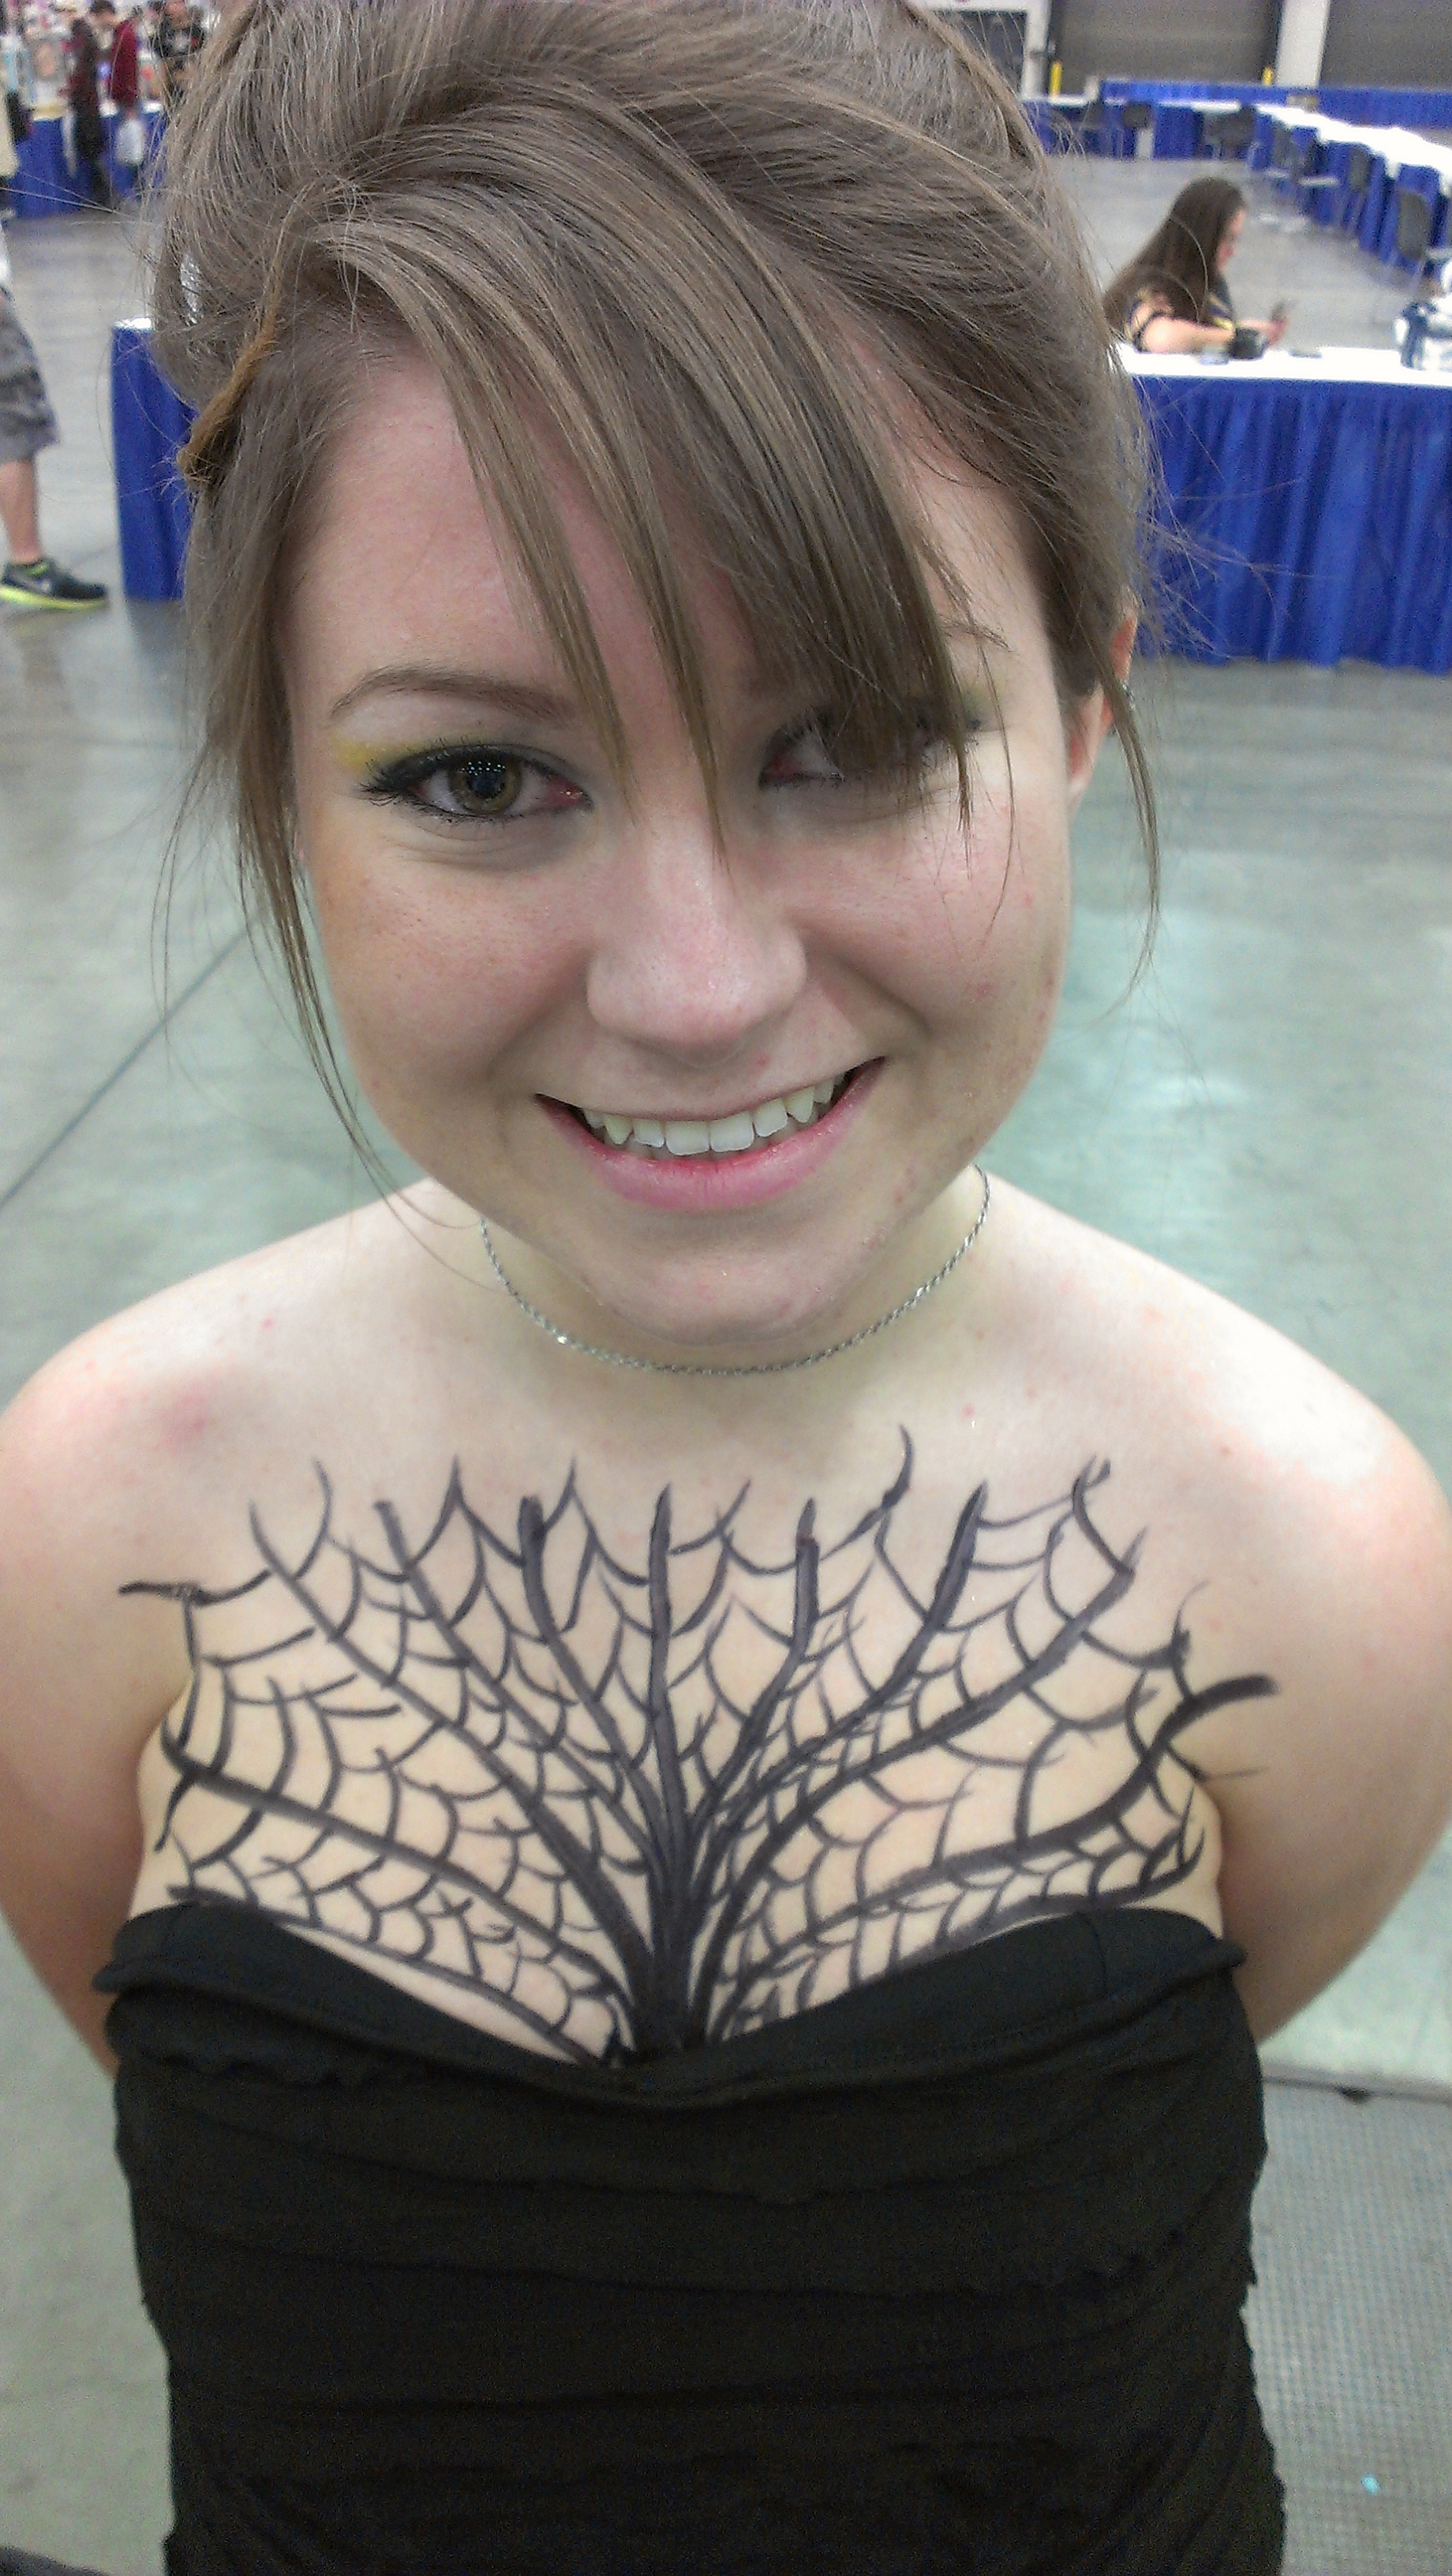 Spider Web Tattoo On Chest